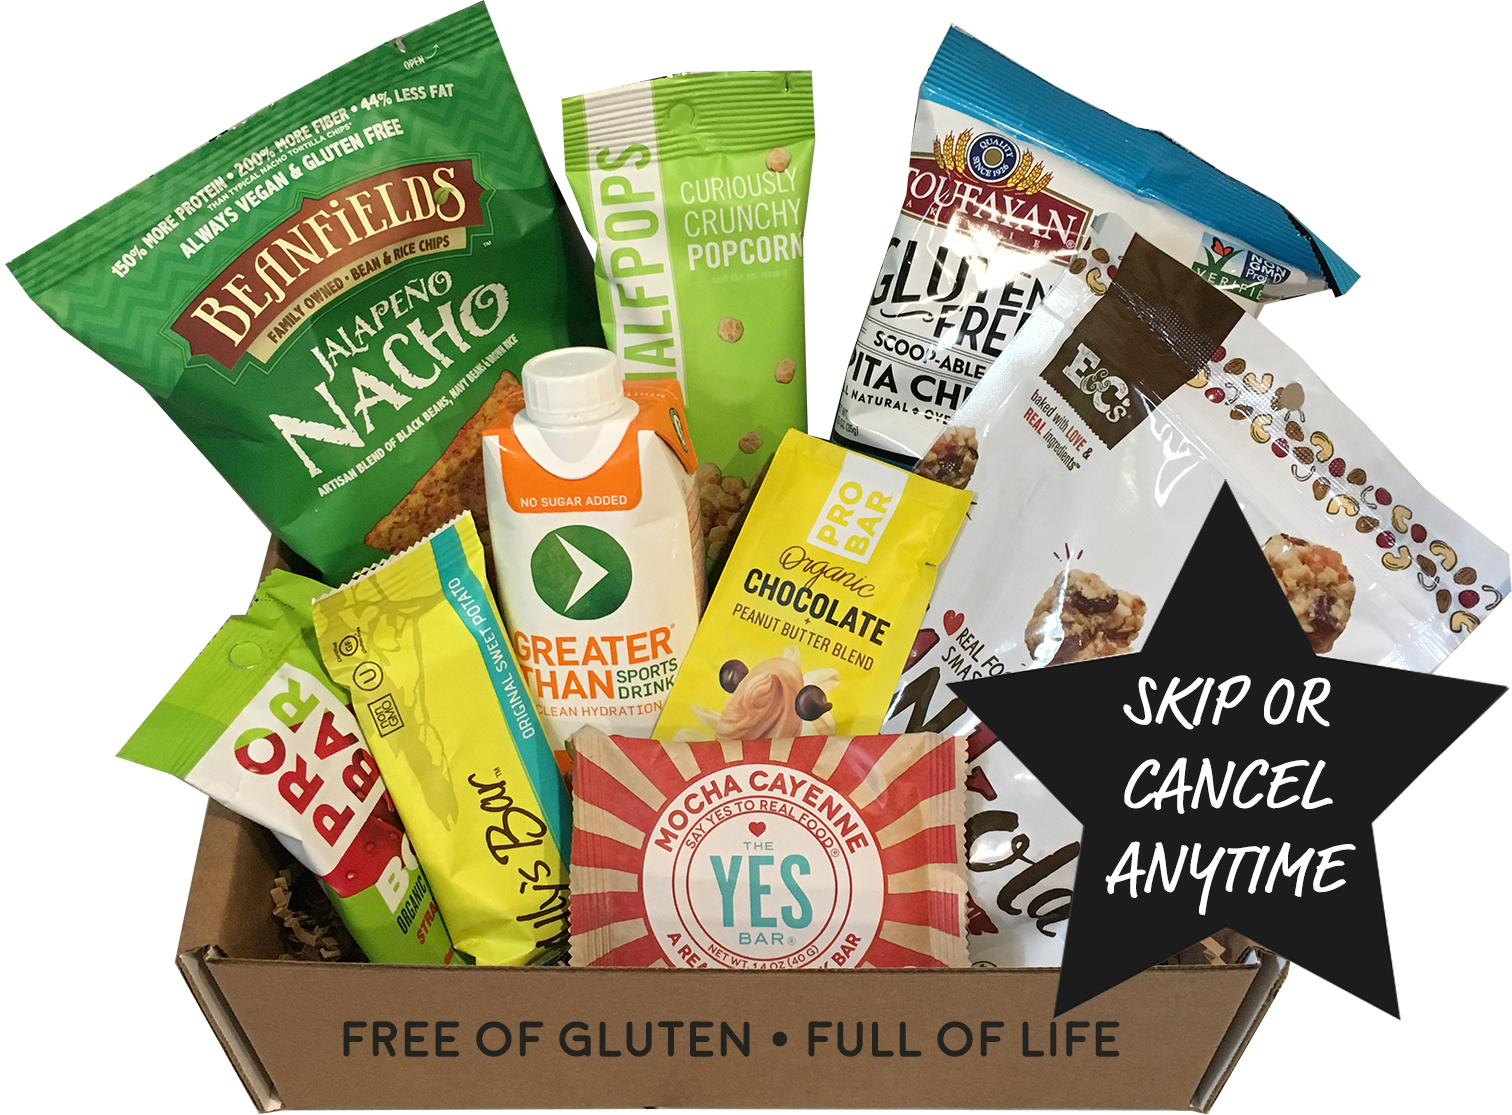 Celiac safe gluten free snack box home delivery month to month 2495month negle Images